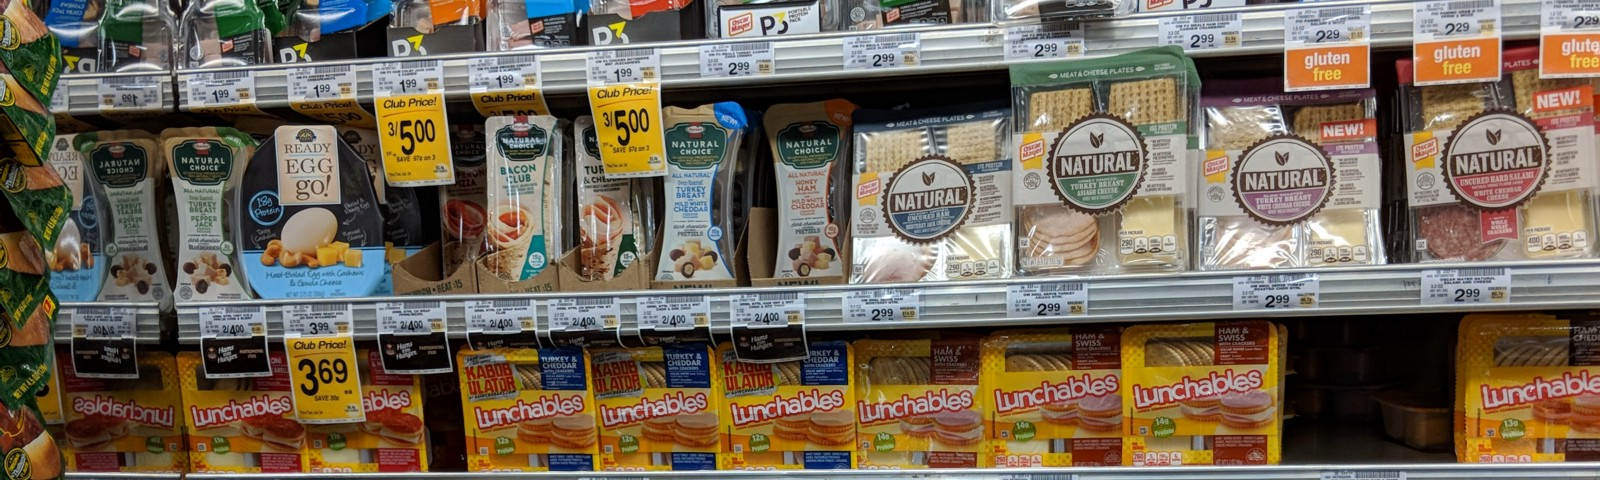 A display at a grocery store of various lunch kits, including Lunchables.